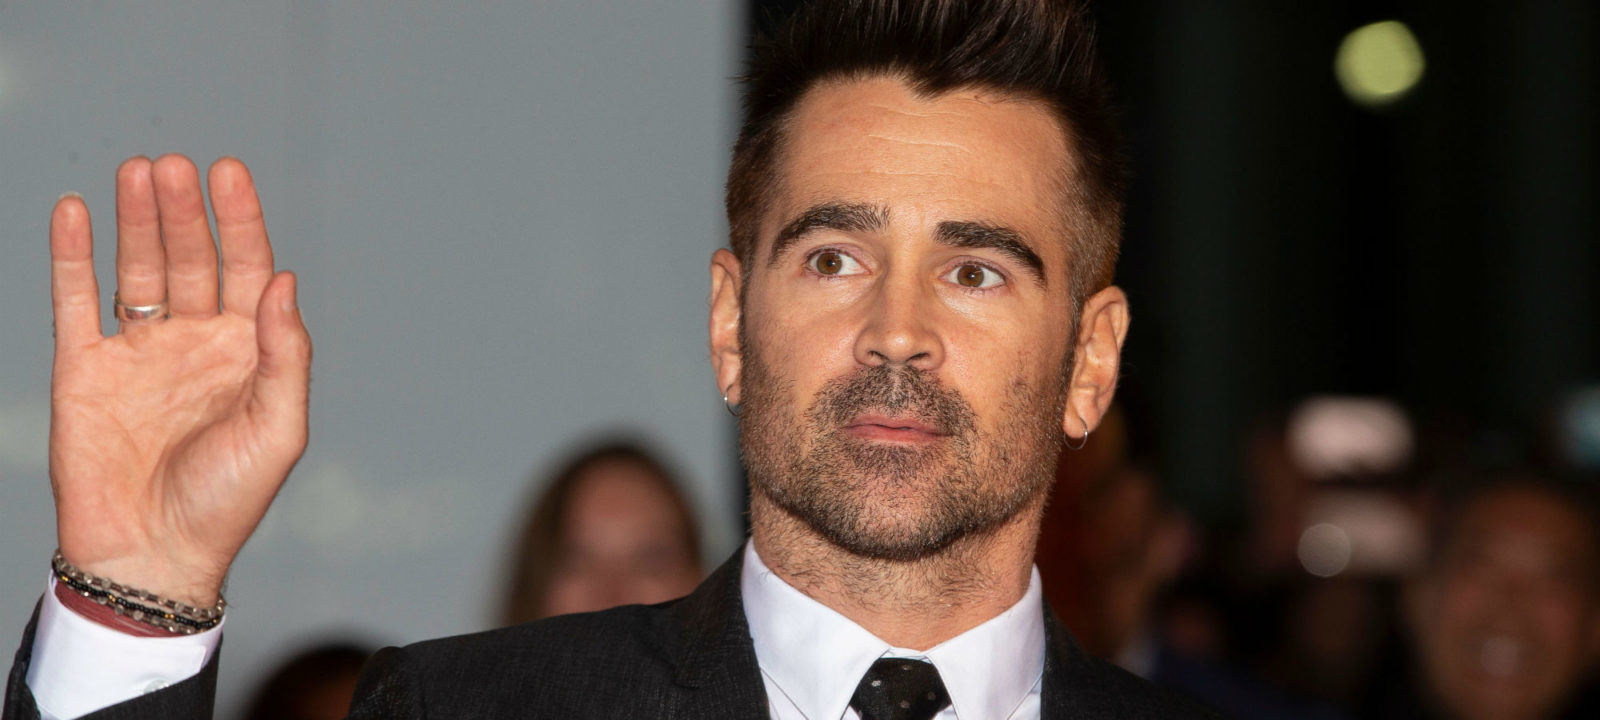 Casting News: Colin Farrell Joins Ensemble Sci-Fi Movie ...